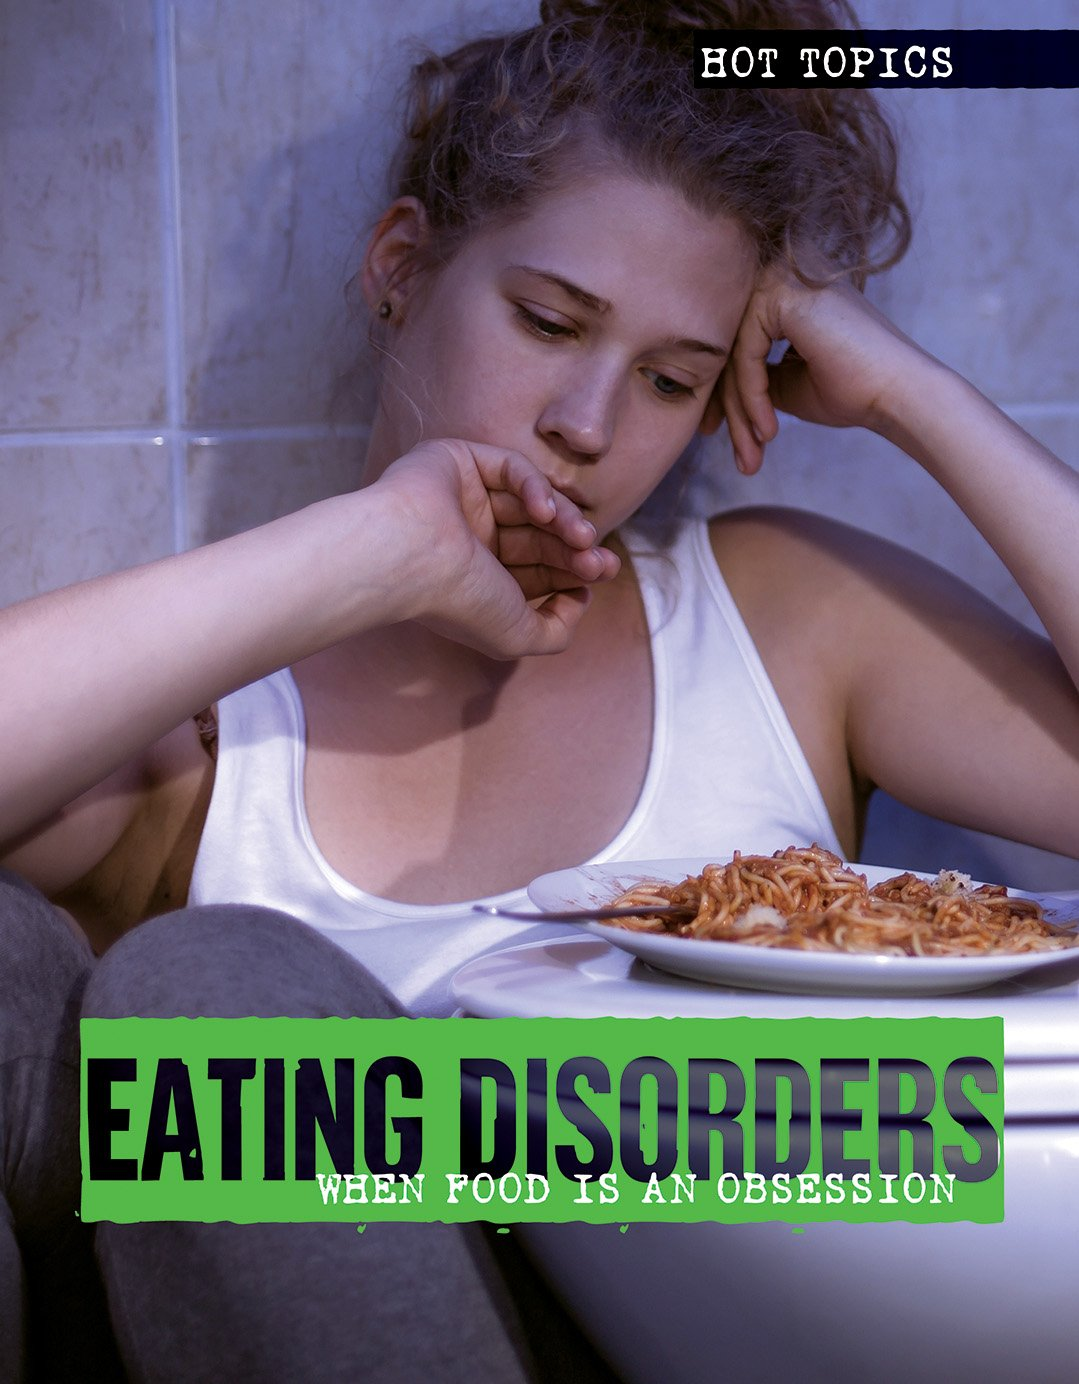 Eating Disorders: When Food Is an Obsession